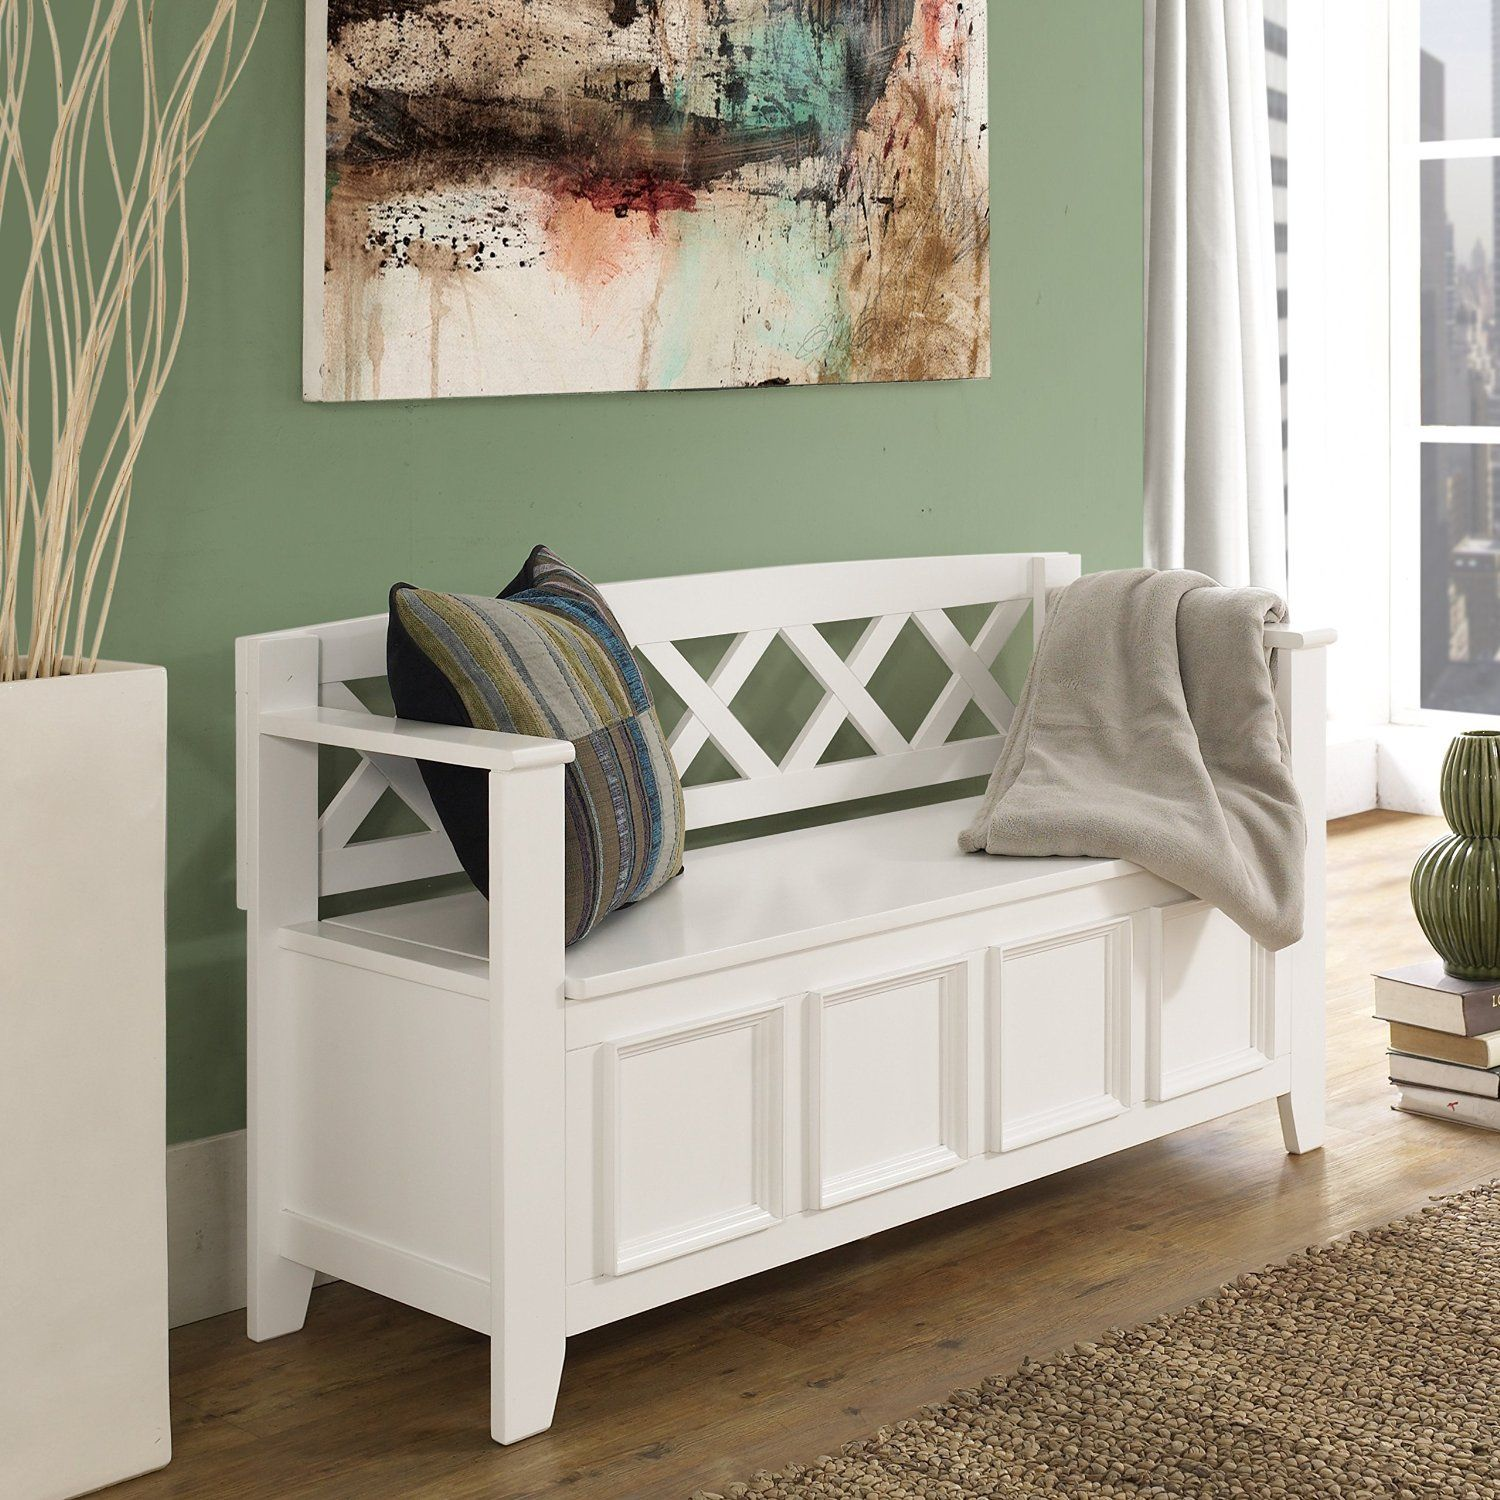 Fabulous Amazon Com Simpli Home Amherst Entryway Storage Bench Pdpeps Interior Chair Design Pdpepsorg